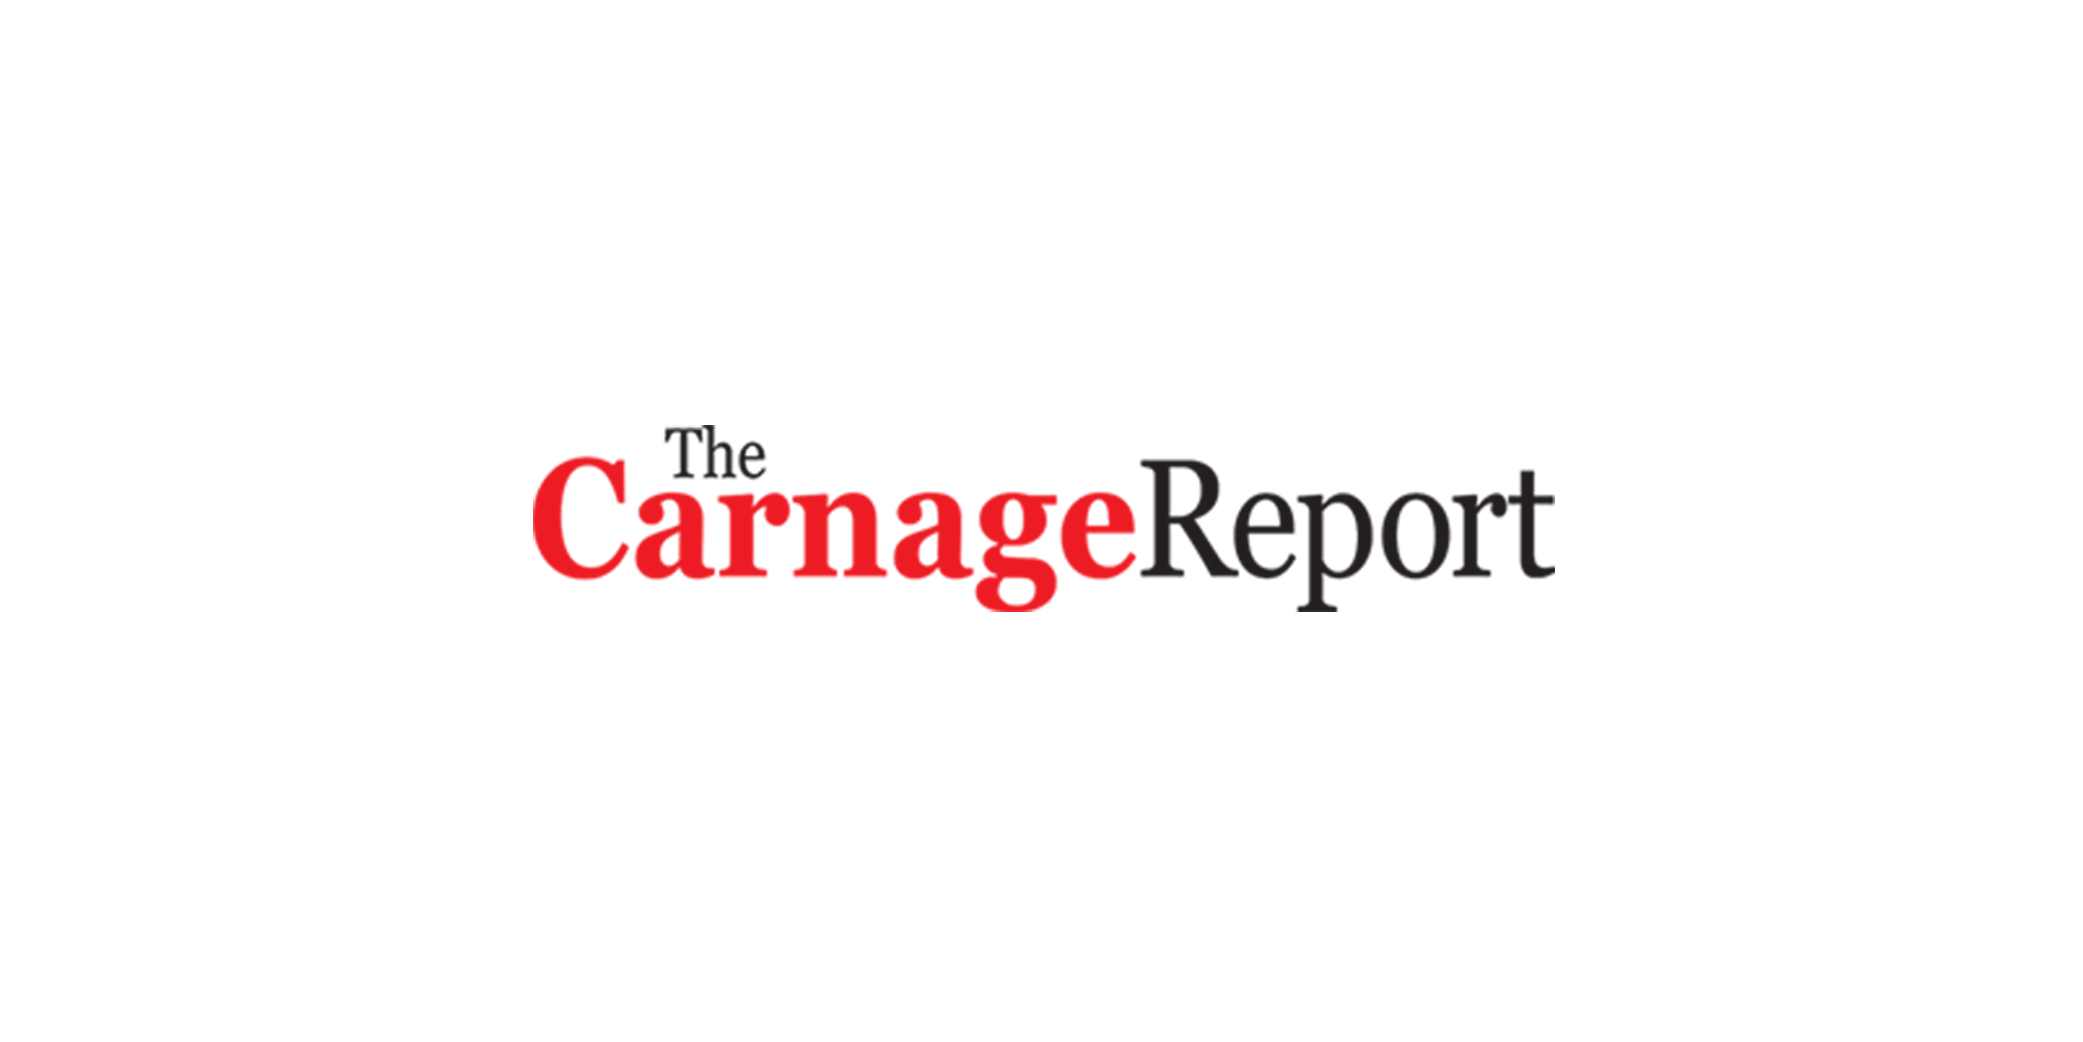 Interview about programmatic advertising with Robert Brill on Carnage Report